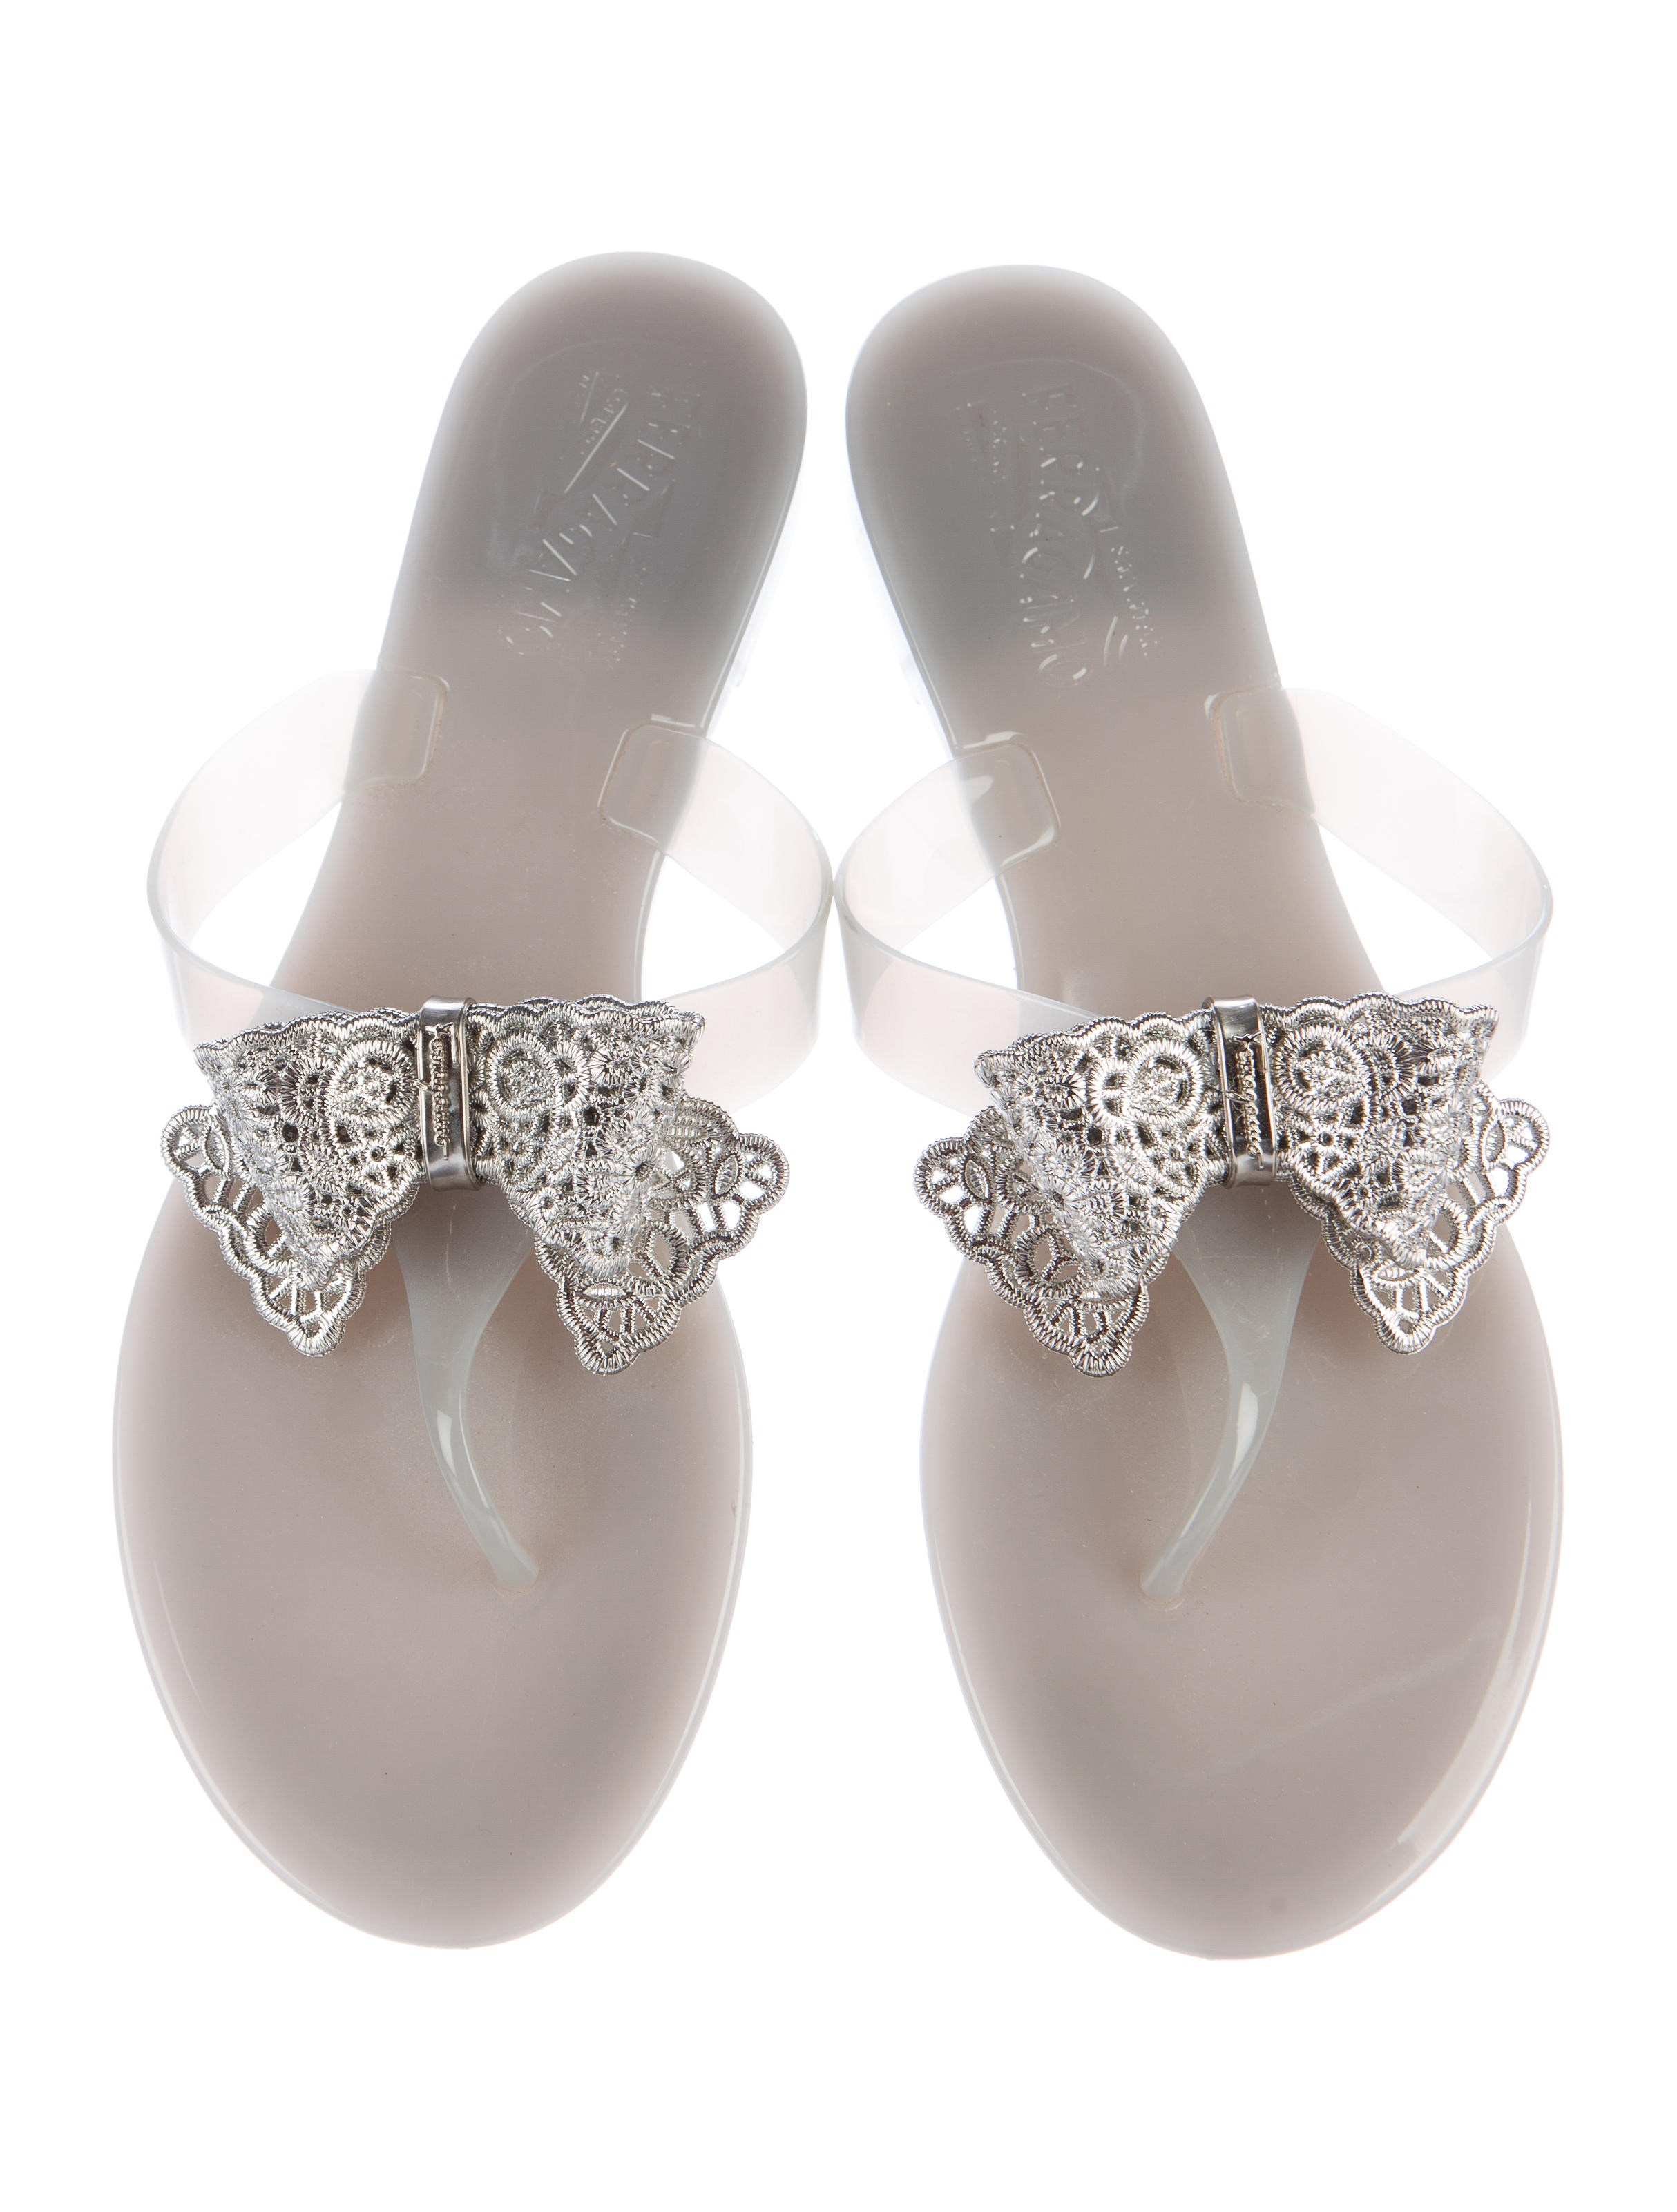 Salvatore Ferragamo Bow-Embellished Jelly Sandals - Shoes - SAL43225 ...